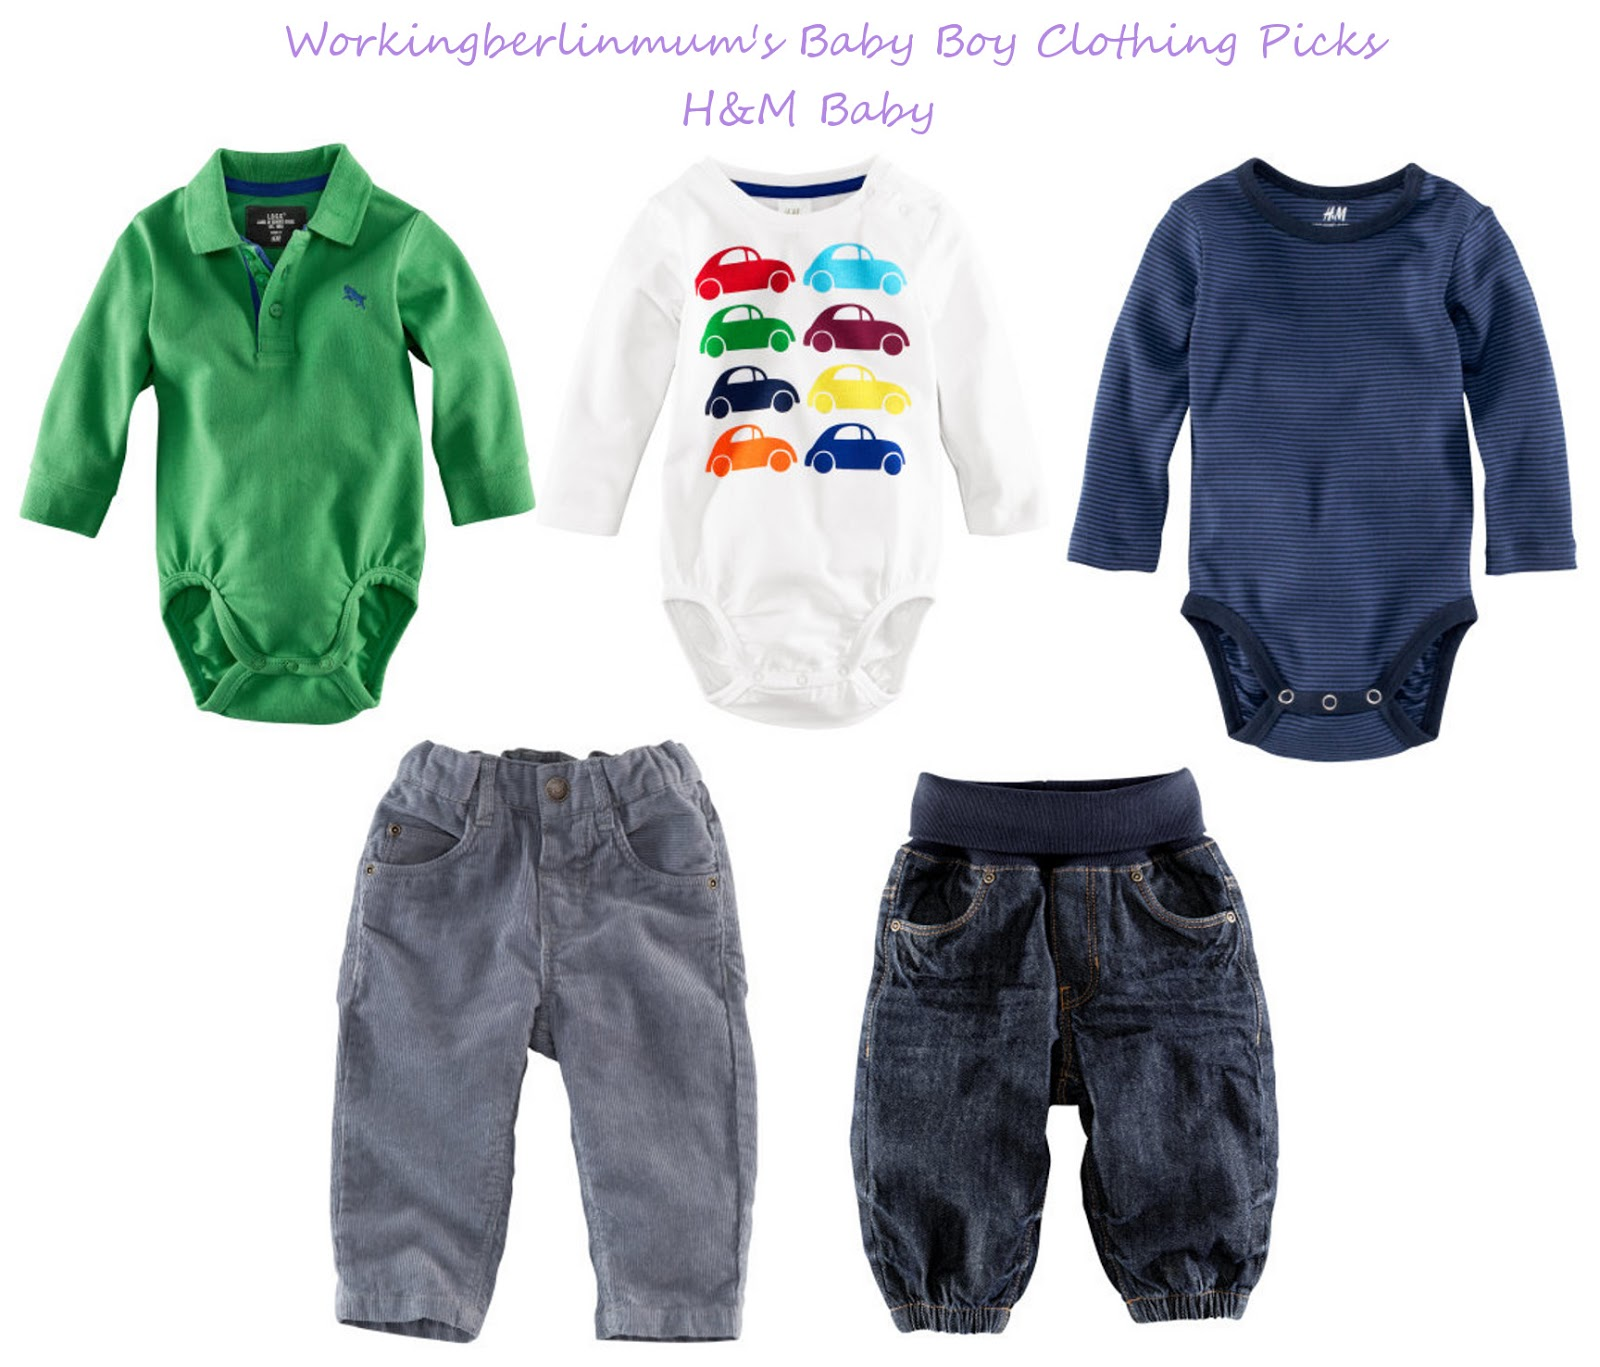 ... on where to find other affordable yet stylish baby boys clothing